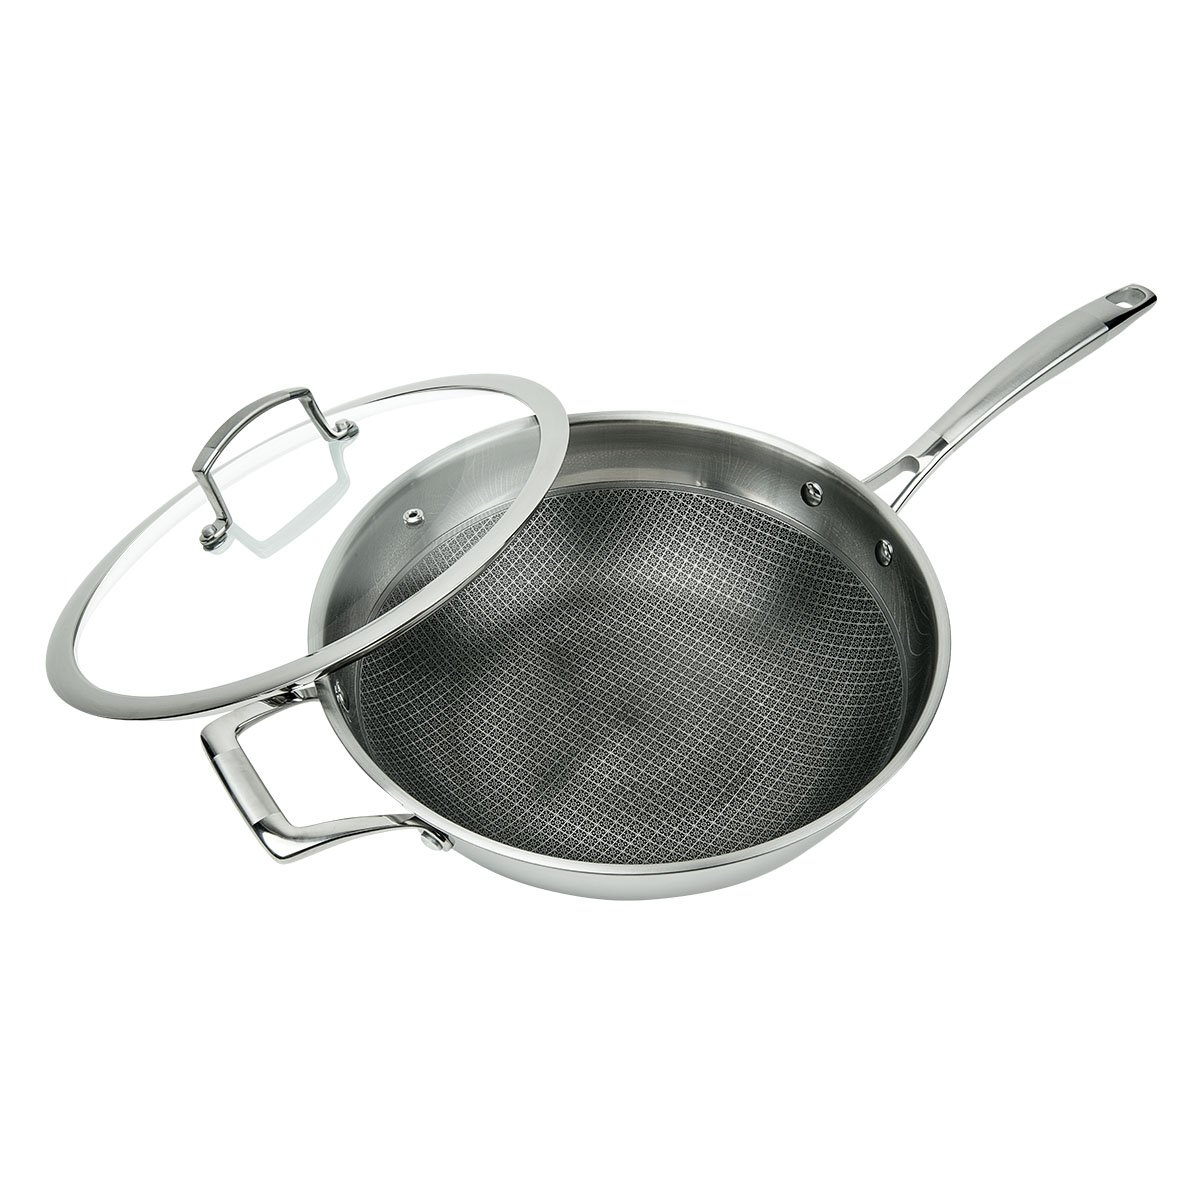 MasterPan MP102 3-PLY Stainless Steel Premium ILAG Non-Stick Scratch-Resistant Wok, 11''